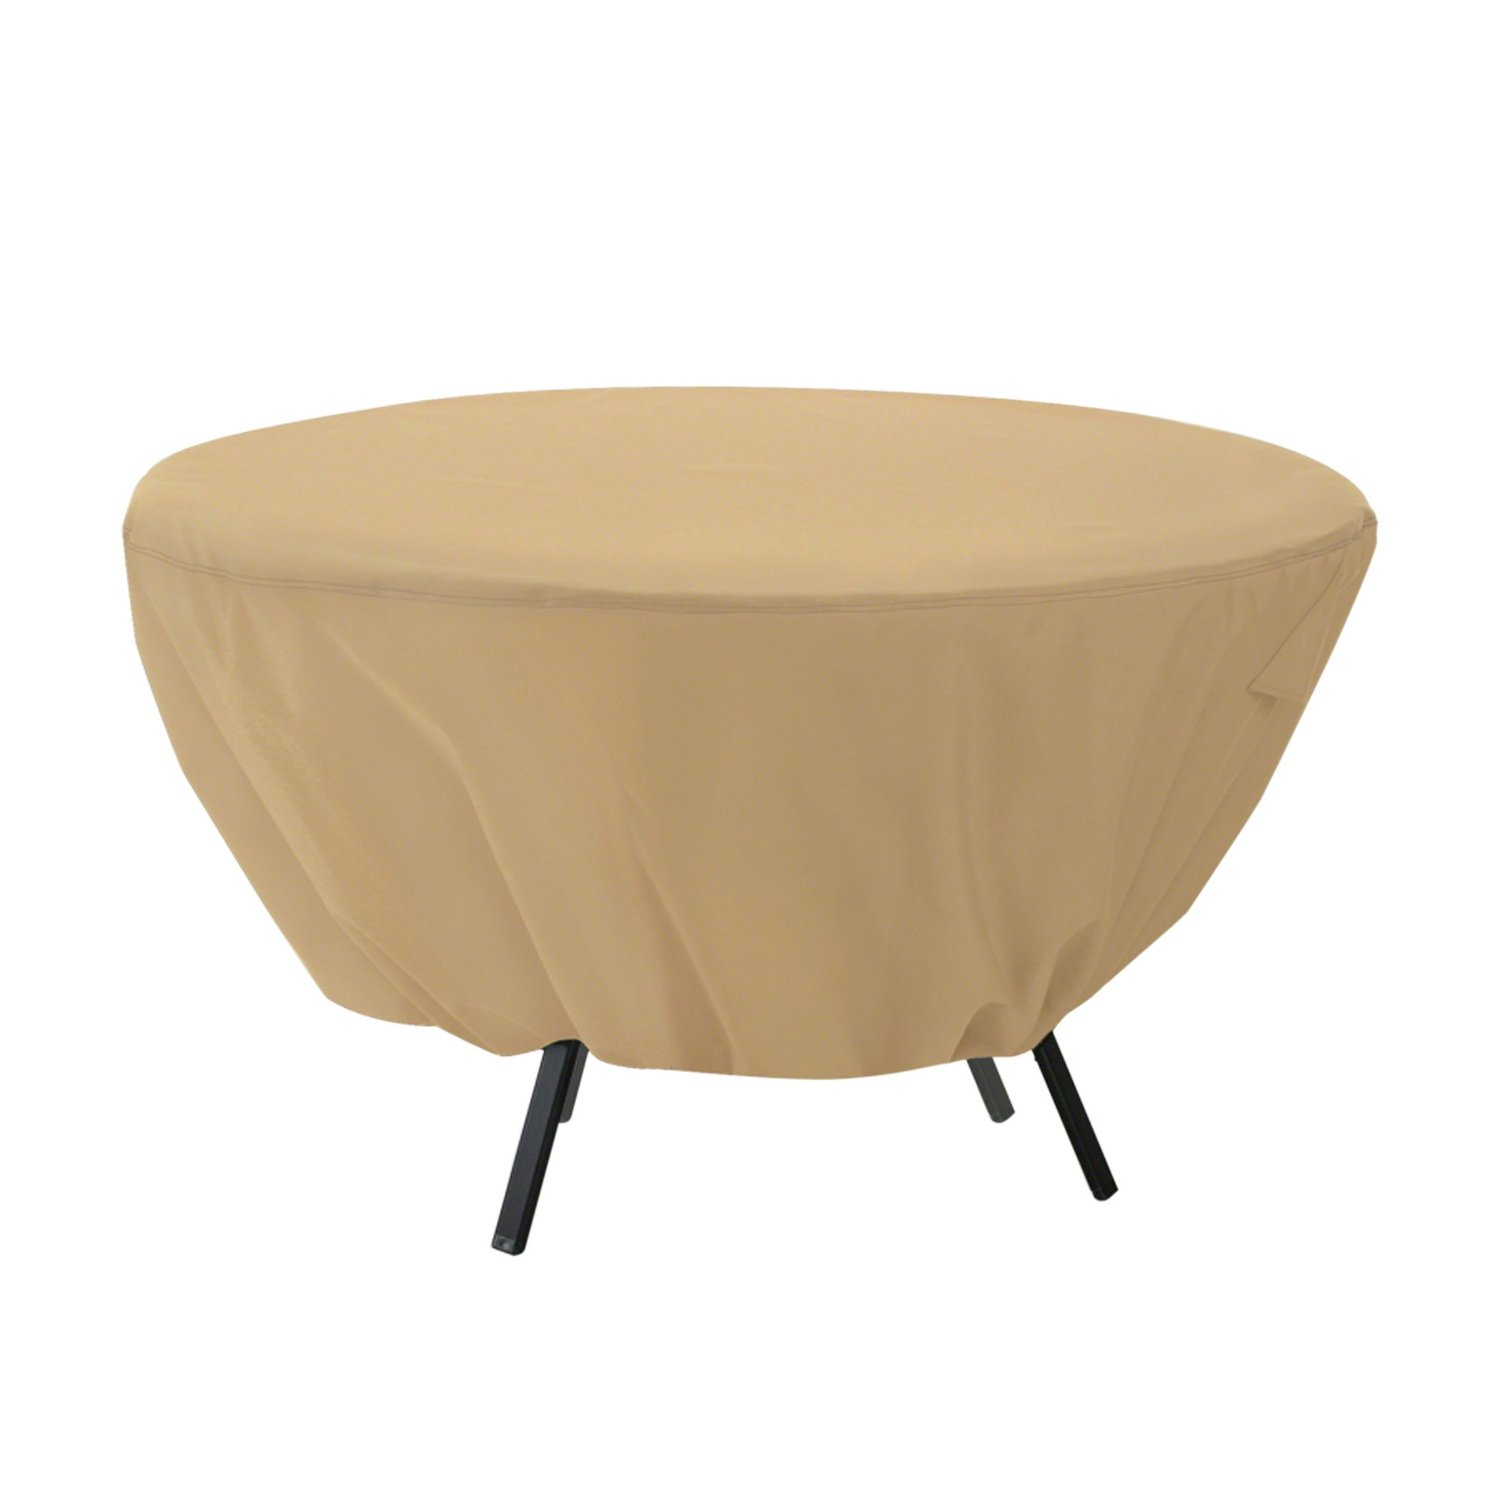 Image of: Patio table cover round